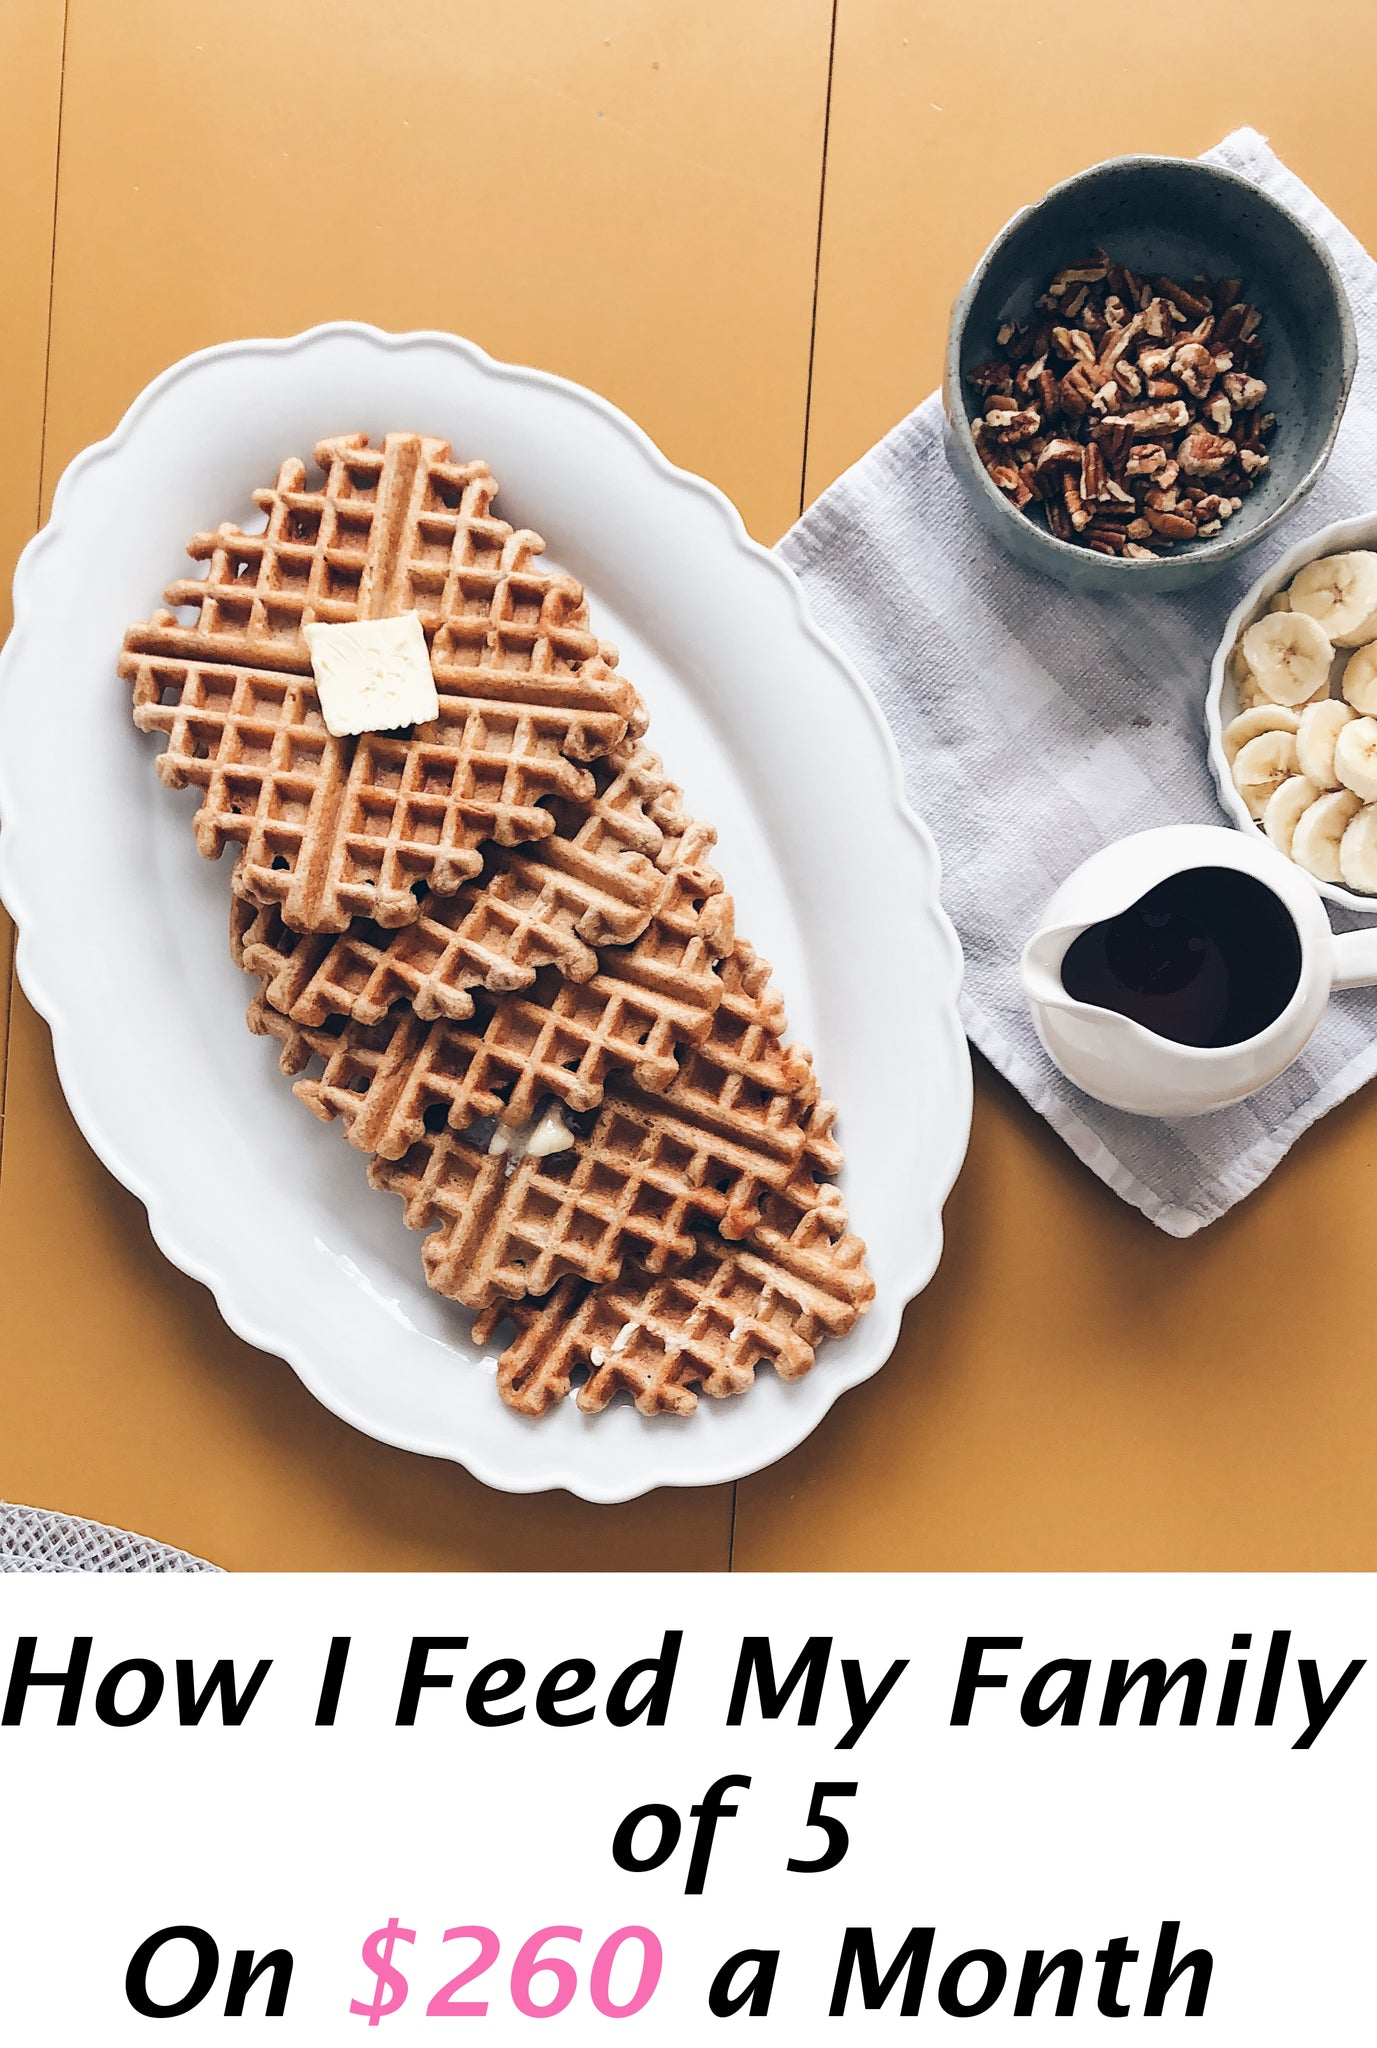 How I Feed My Family of 5 on $260 a Month